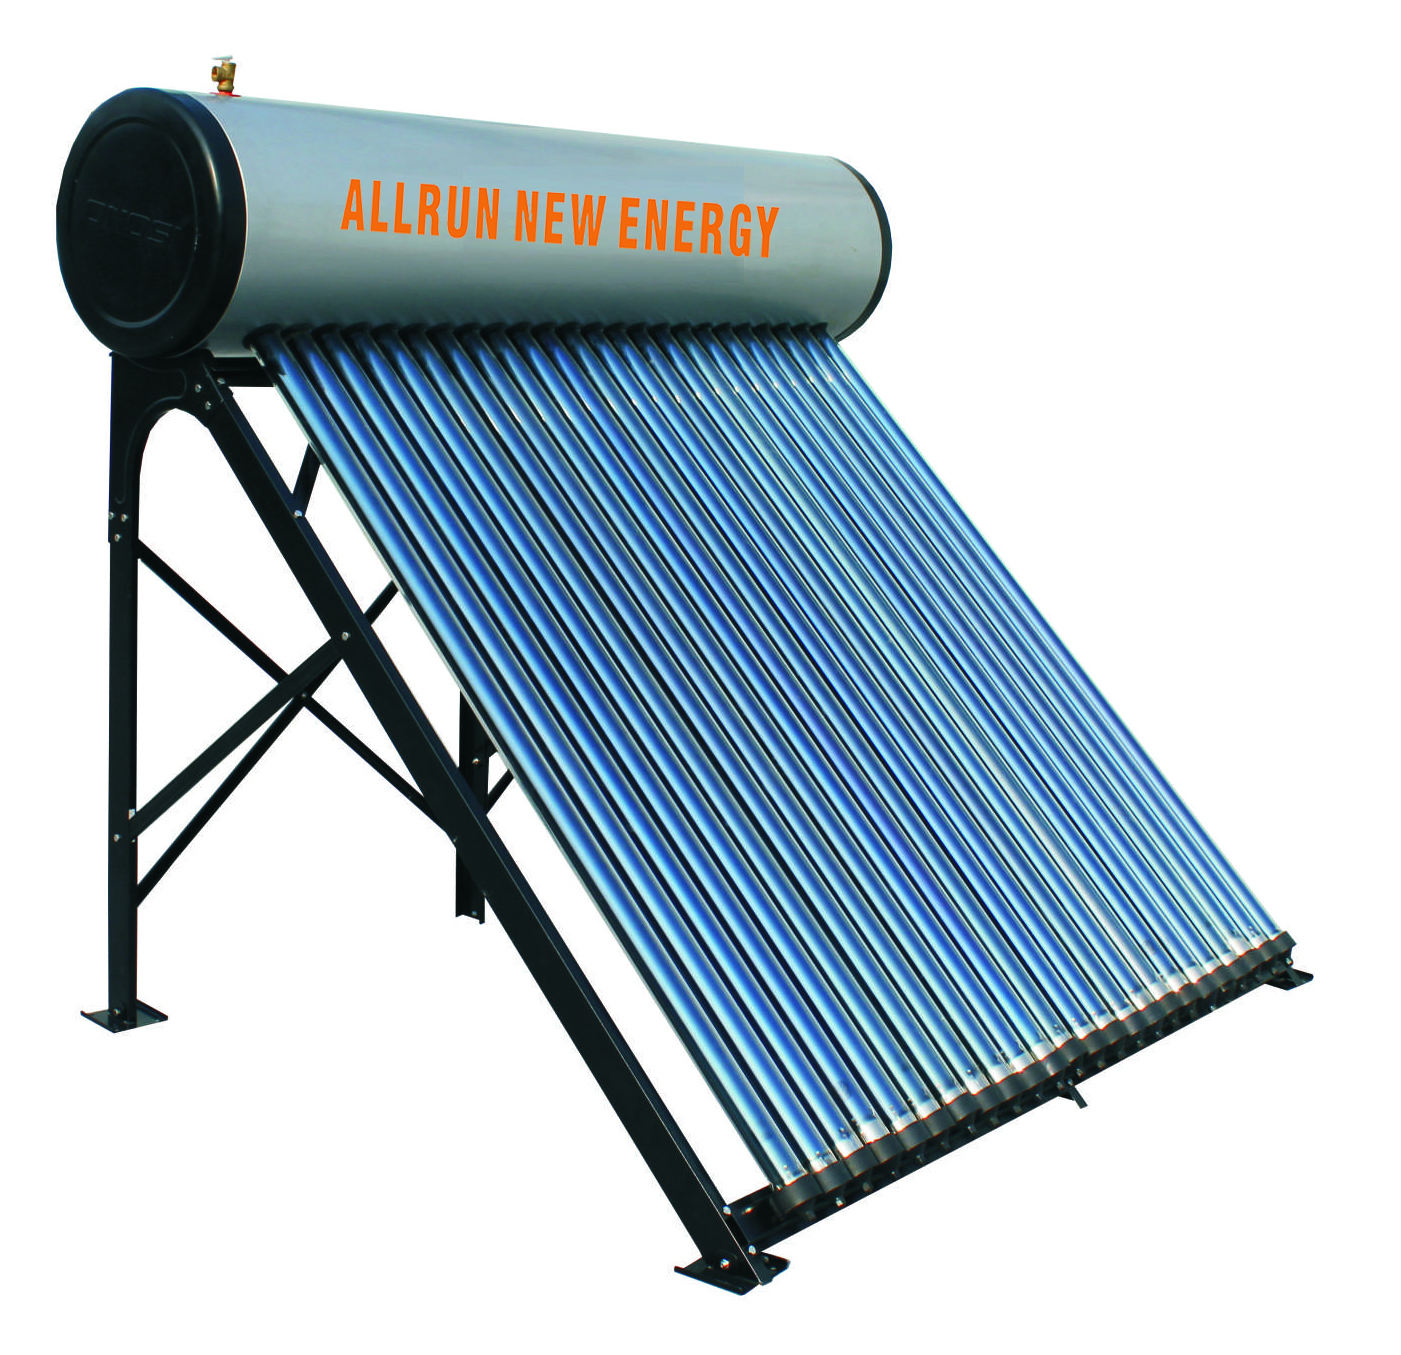 100L 150L 200L 250L 300L 500L non-pressurized solar hot water heater also called vacuum tube solar water heater system